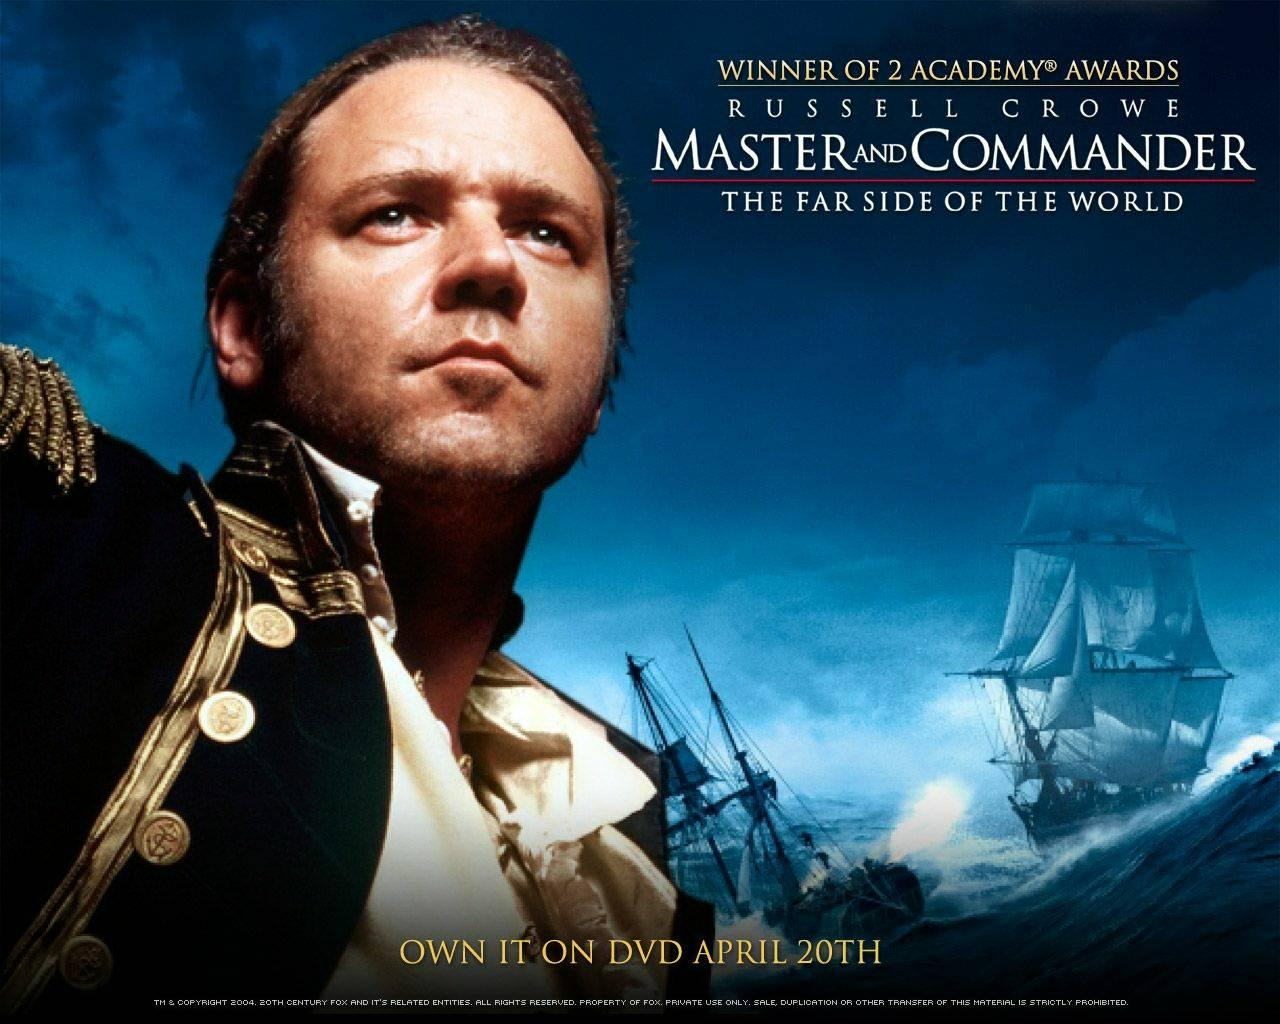 http://www.wallcoo.net/movie/master_and_commander/m01/14.jpg